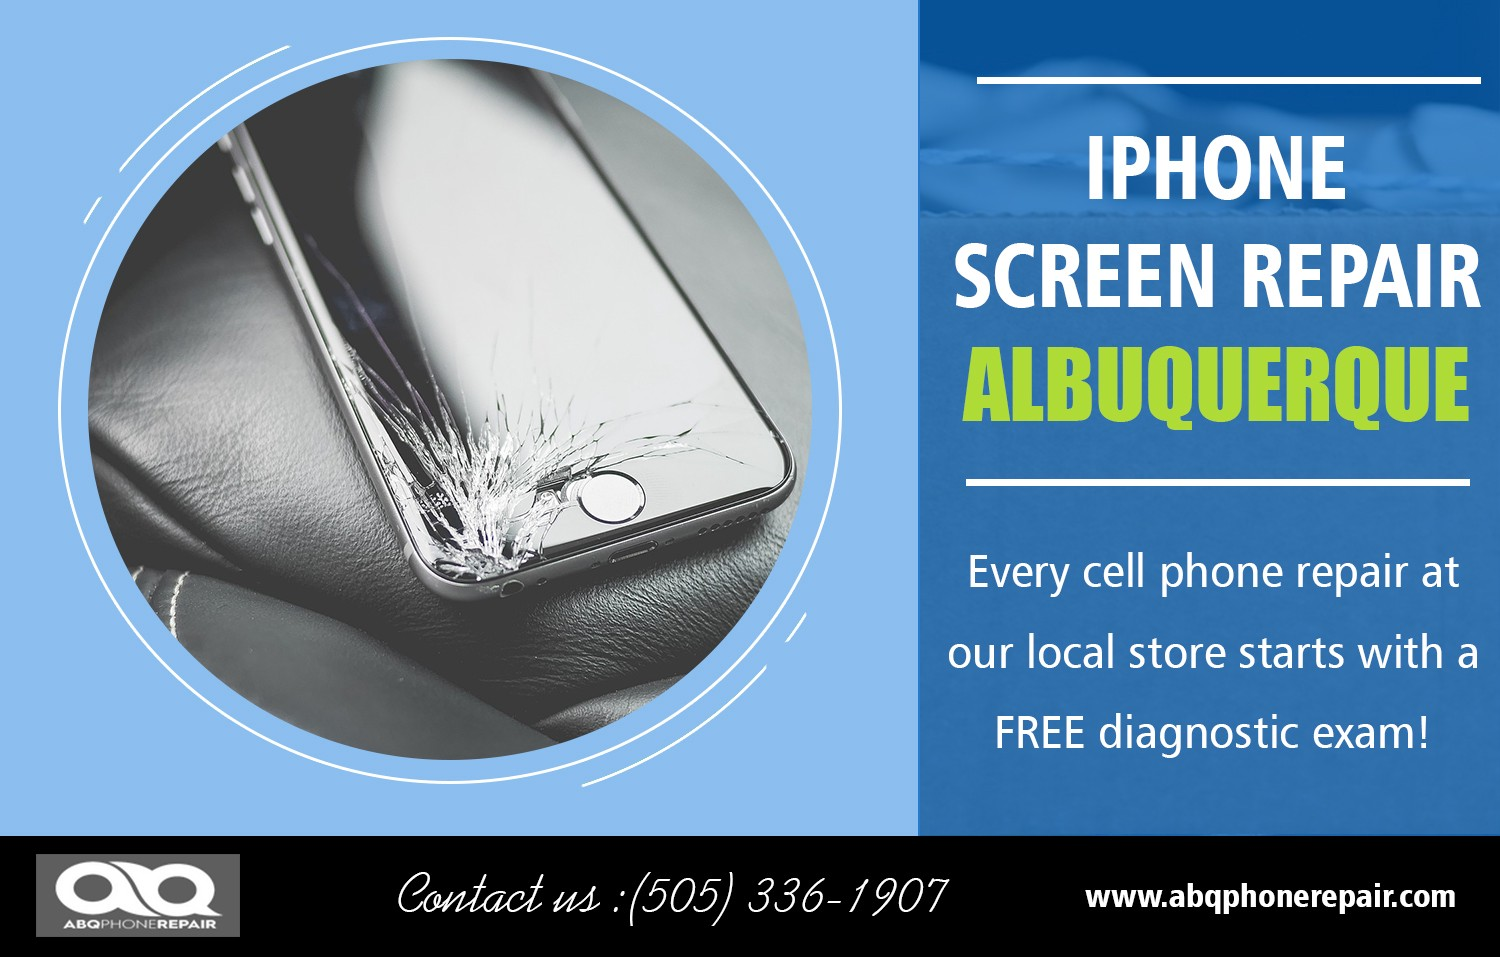 Cell Phone Repair Albuquerque >> Iphone Screen Repair Albuquerque Call 505 336 1907